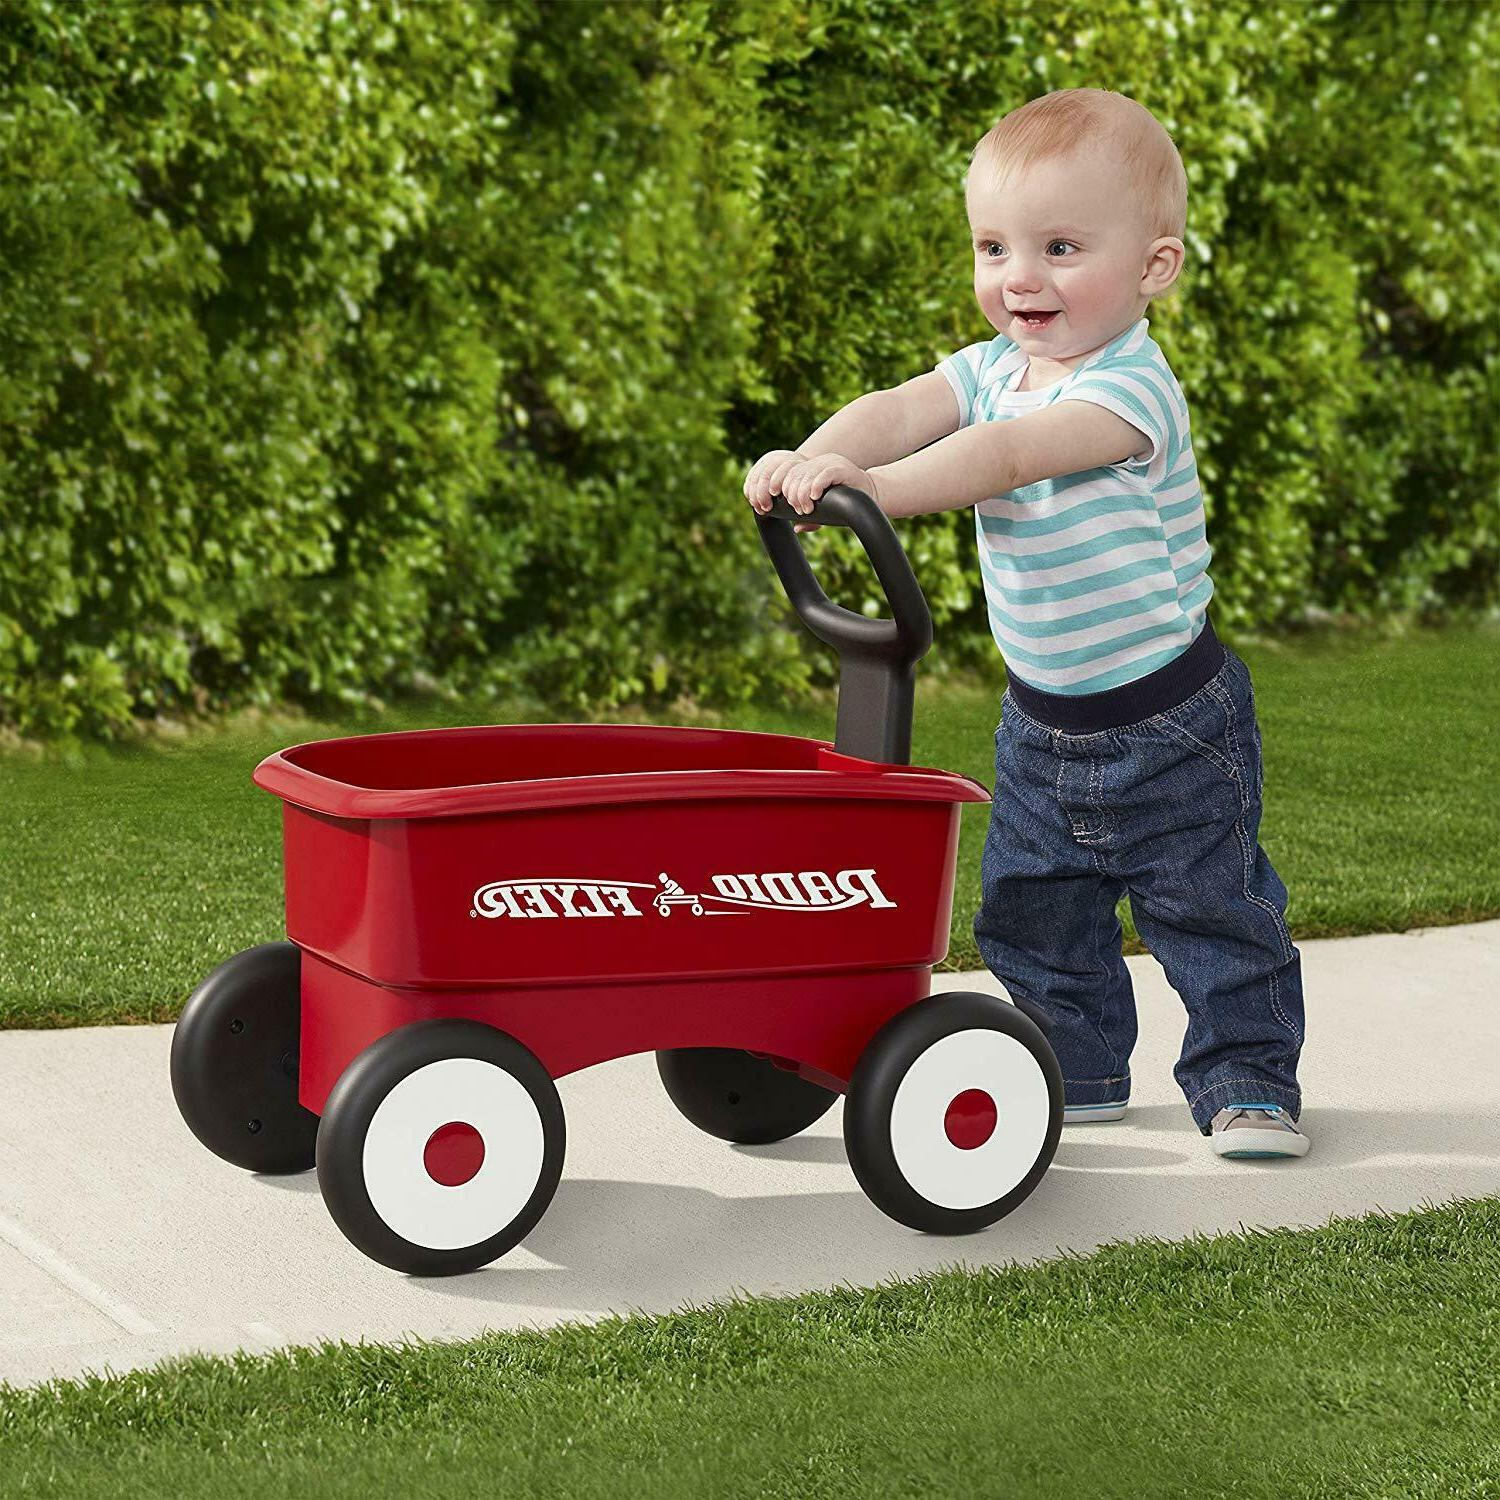 Radio Flyer 2-in-1 Wagon, Red